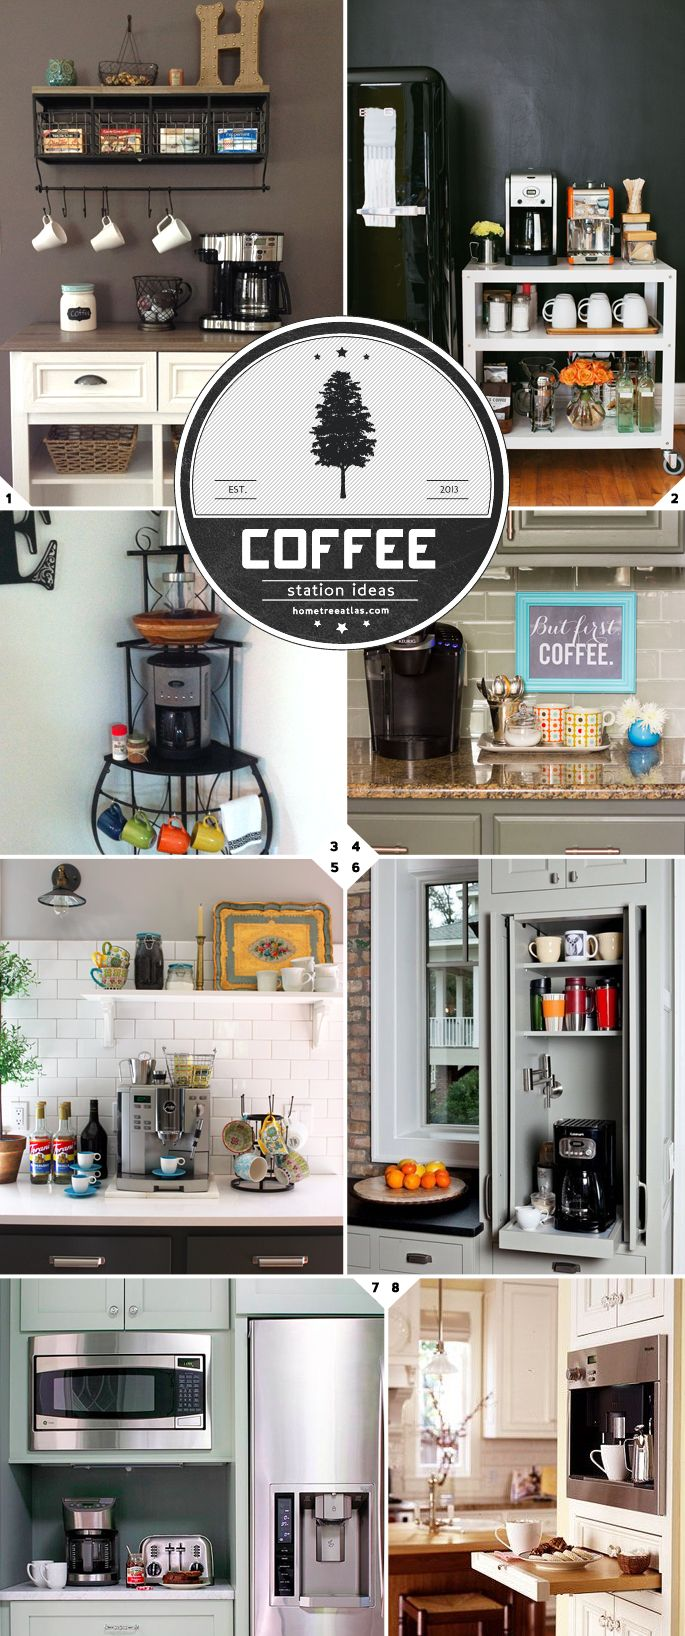 Group all of your essential coffee making materials, tools, and ingredients to one space, and create your own home kitchen coffee station. You can use side tables, carts, the kitchen counter, a cabinet, or go the built in route. Side Tables and Carts A side table is a great way to create a coffee station […]